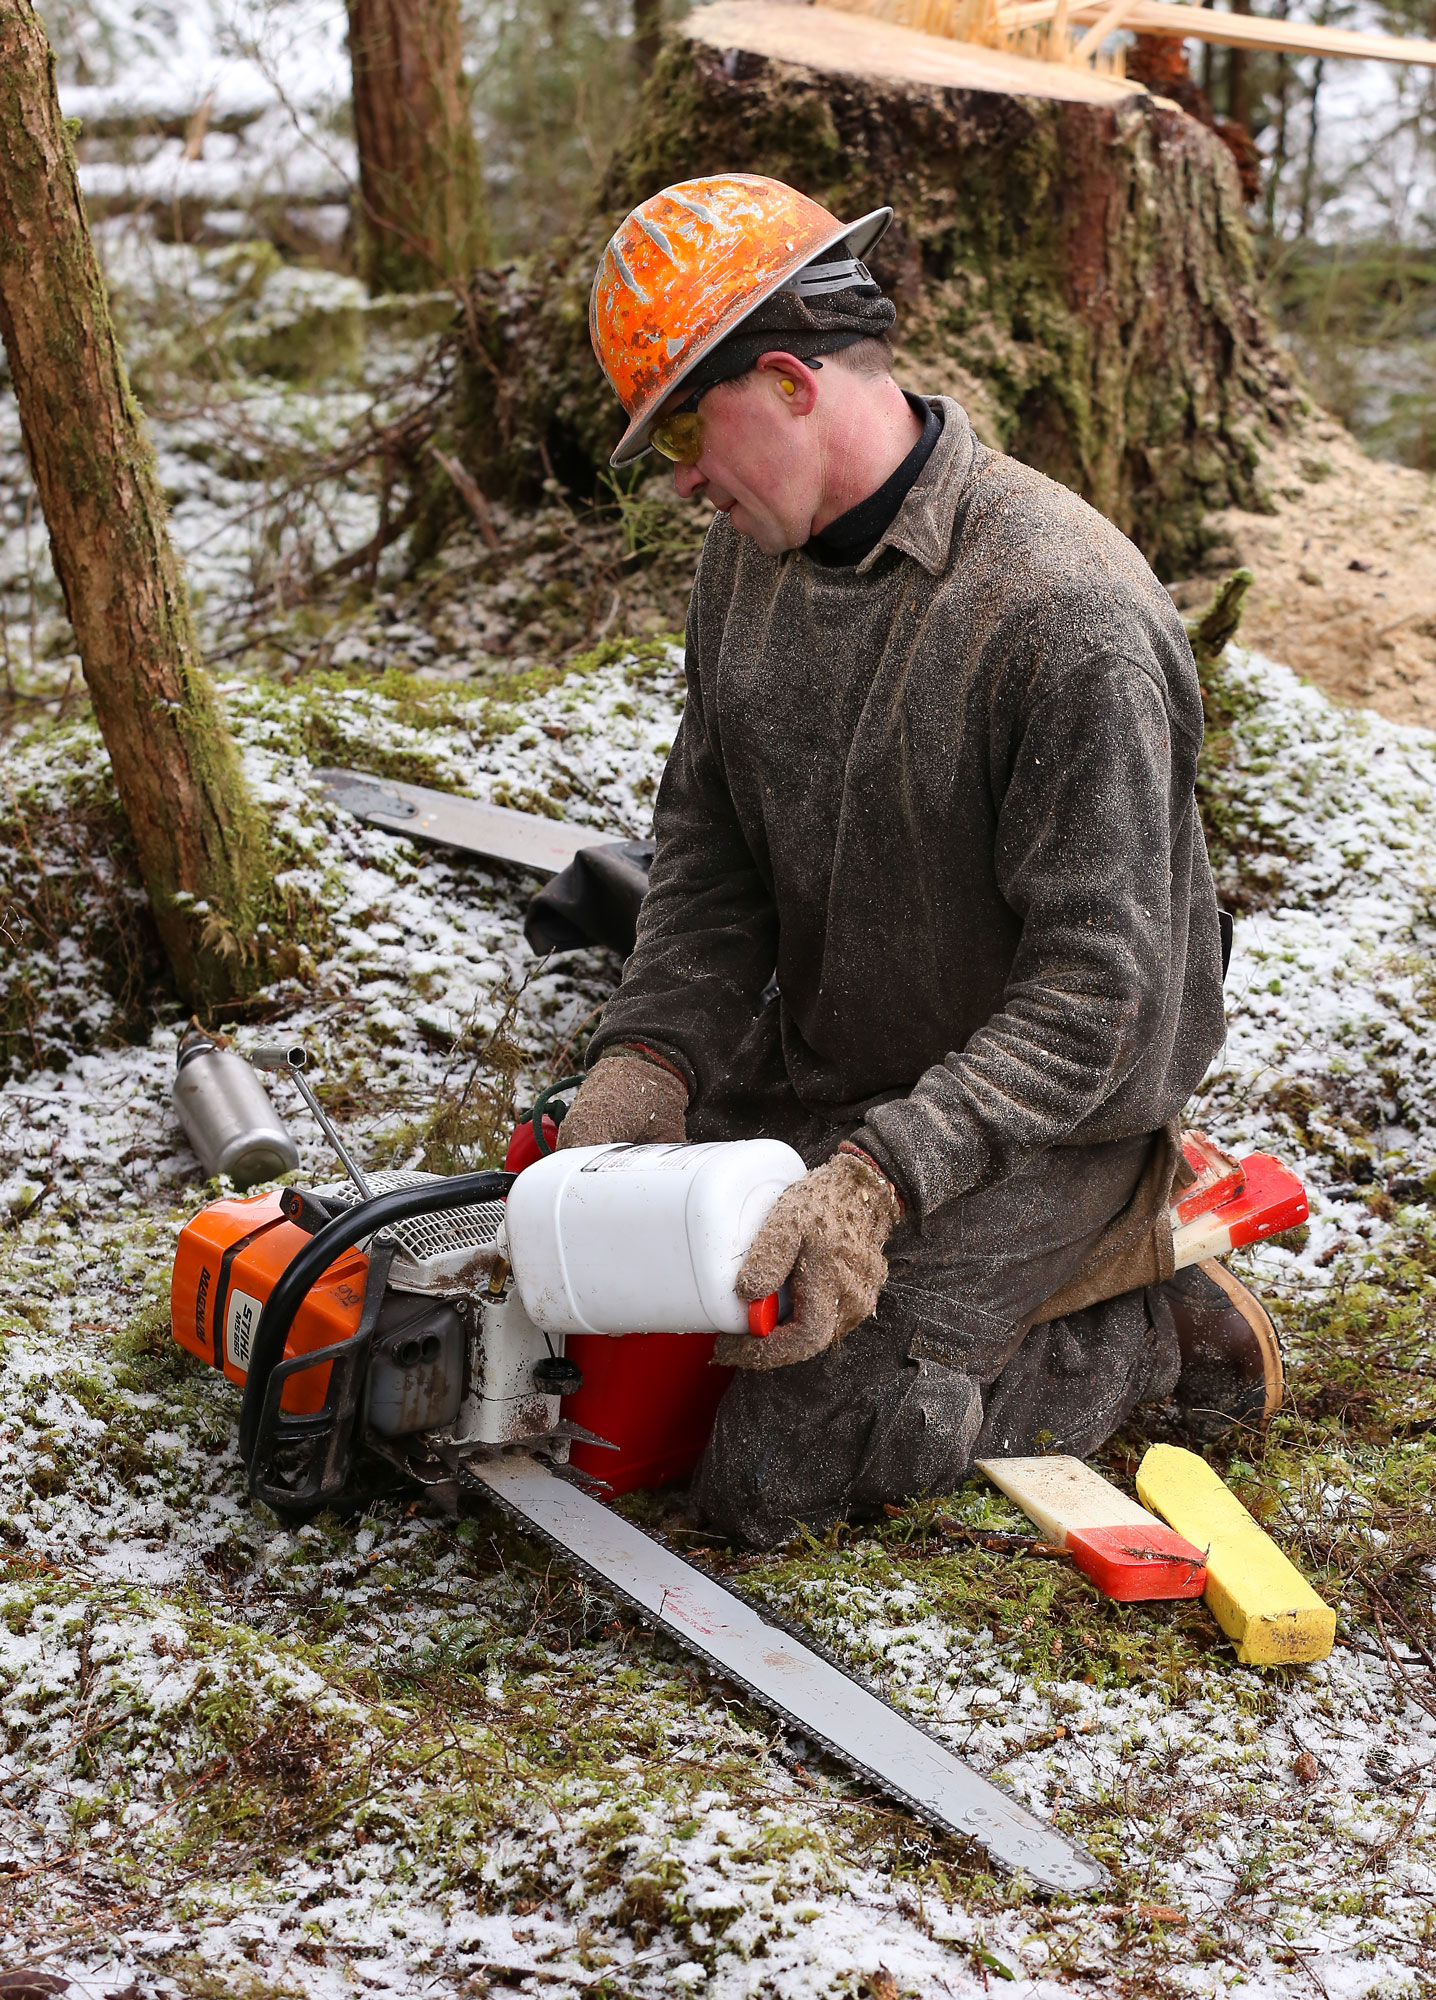 Adding bar oil to the chainsaw.